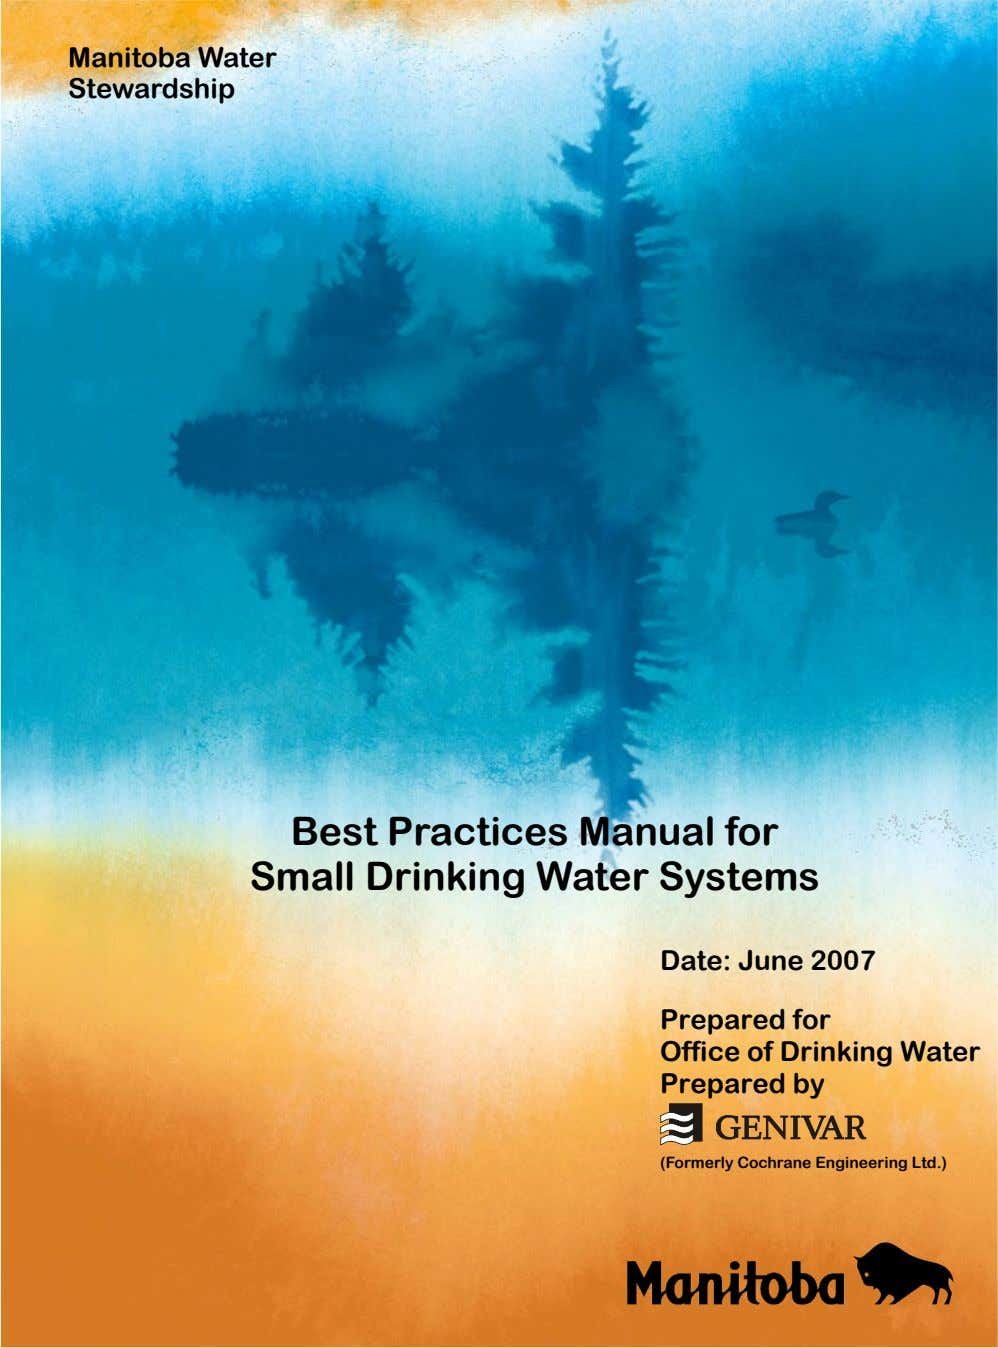 Manitoba Water Stewardship Best Practices Manual for Small Drinking Water Systems Date: June 2007 Prepared